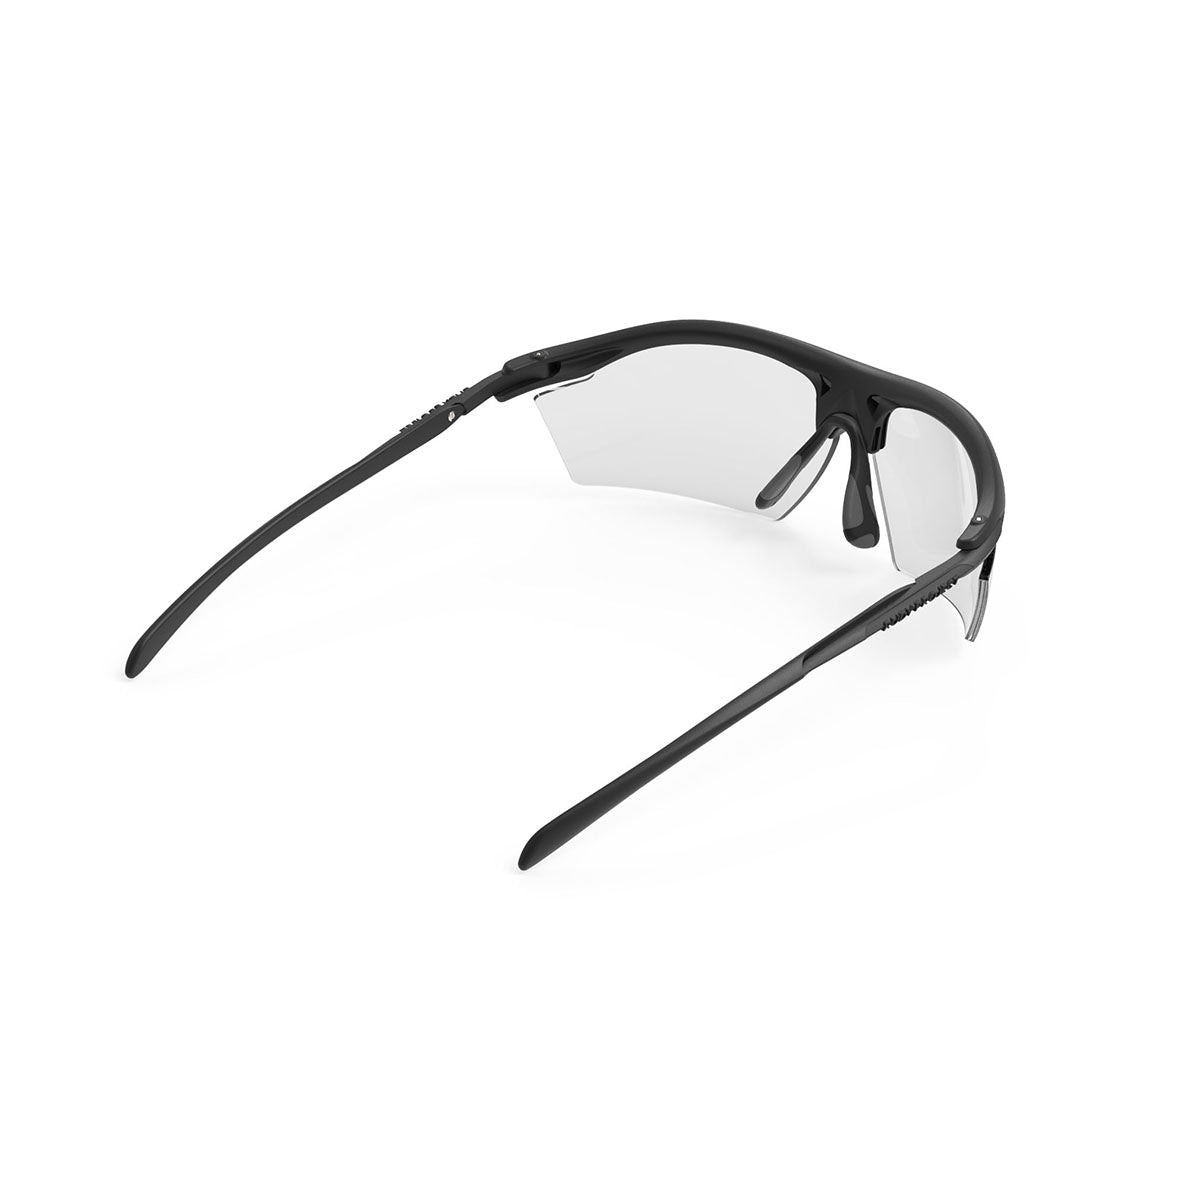 Rudy Project - Rydon - frame color: Stealth Matte Black - lens color: ImpactX-2 Photochromic Clear to Black - photo angle: Top Back Angle Variant Hover Image